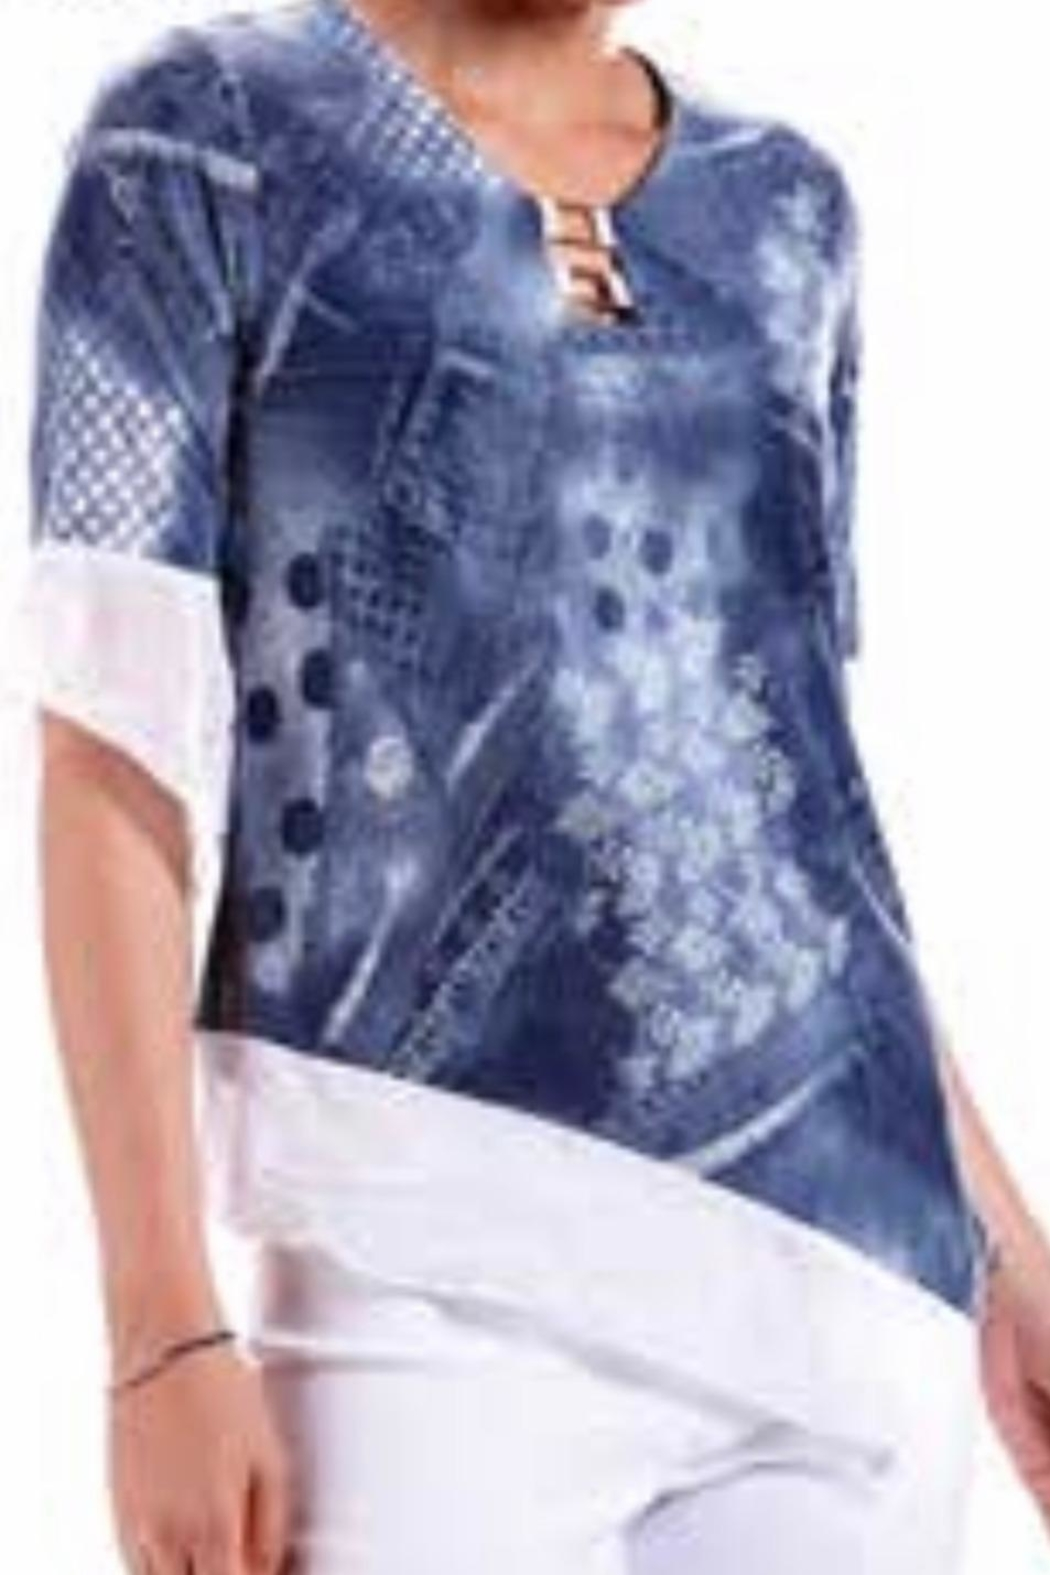 Modes Crystal Fashions Denim And Lace ! - Main Image